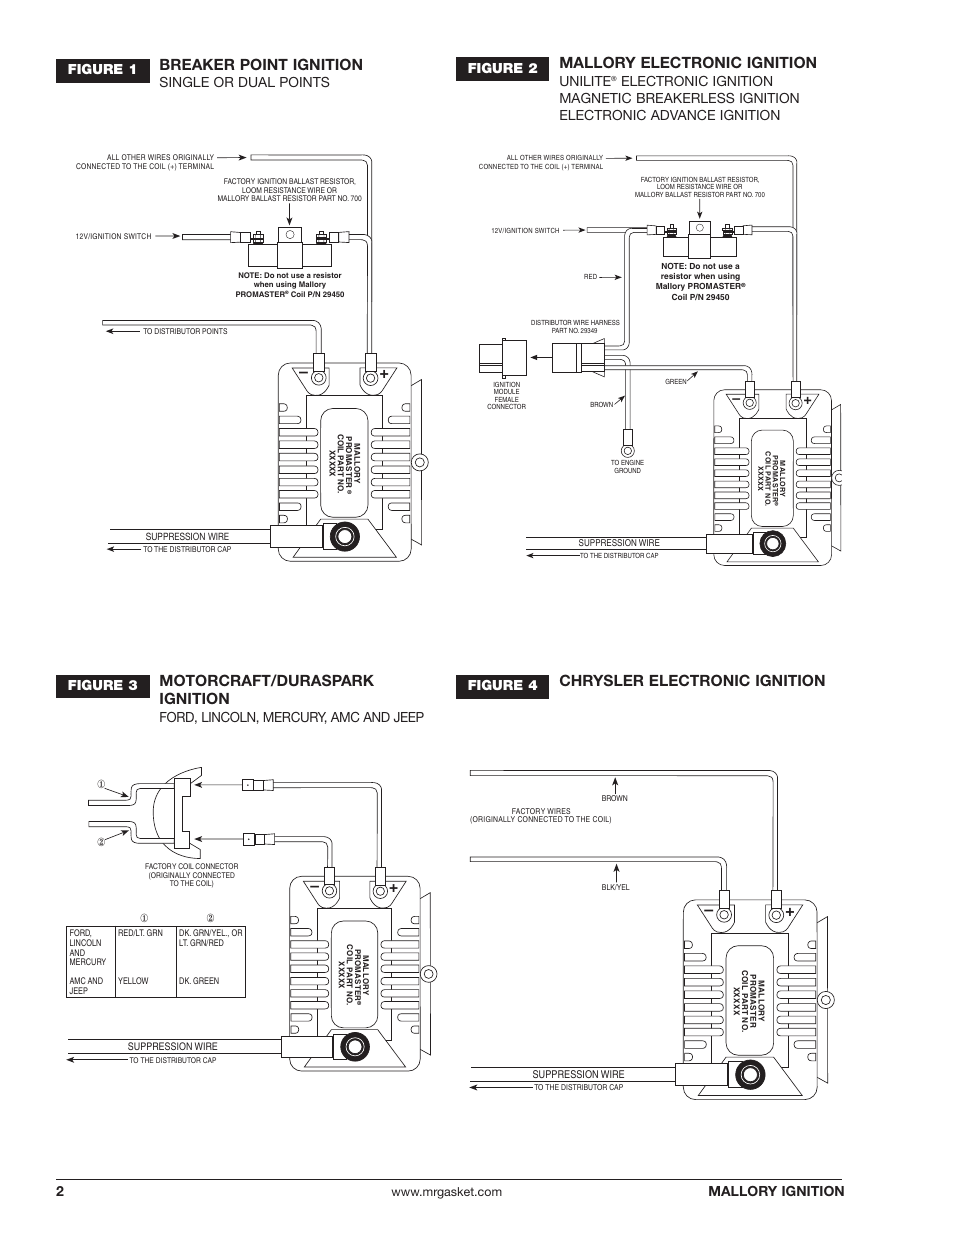 medium resolution of mallory coil 29440 wiring diagram wiring diagram mallory 29440 wiring diagram schema diagram database mix mallory